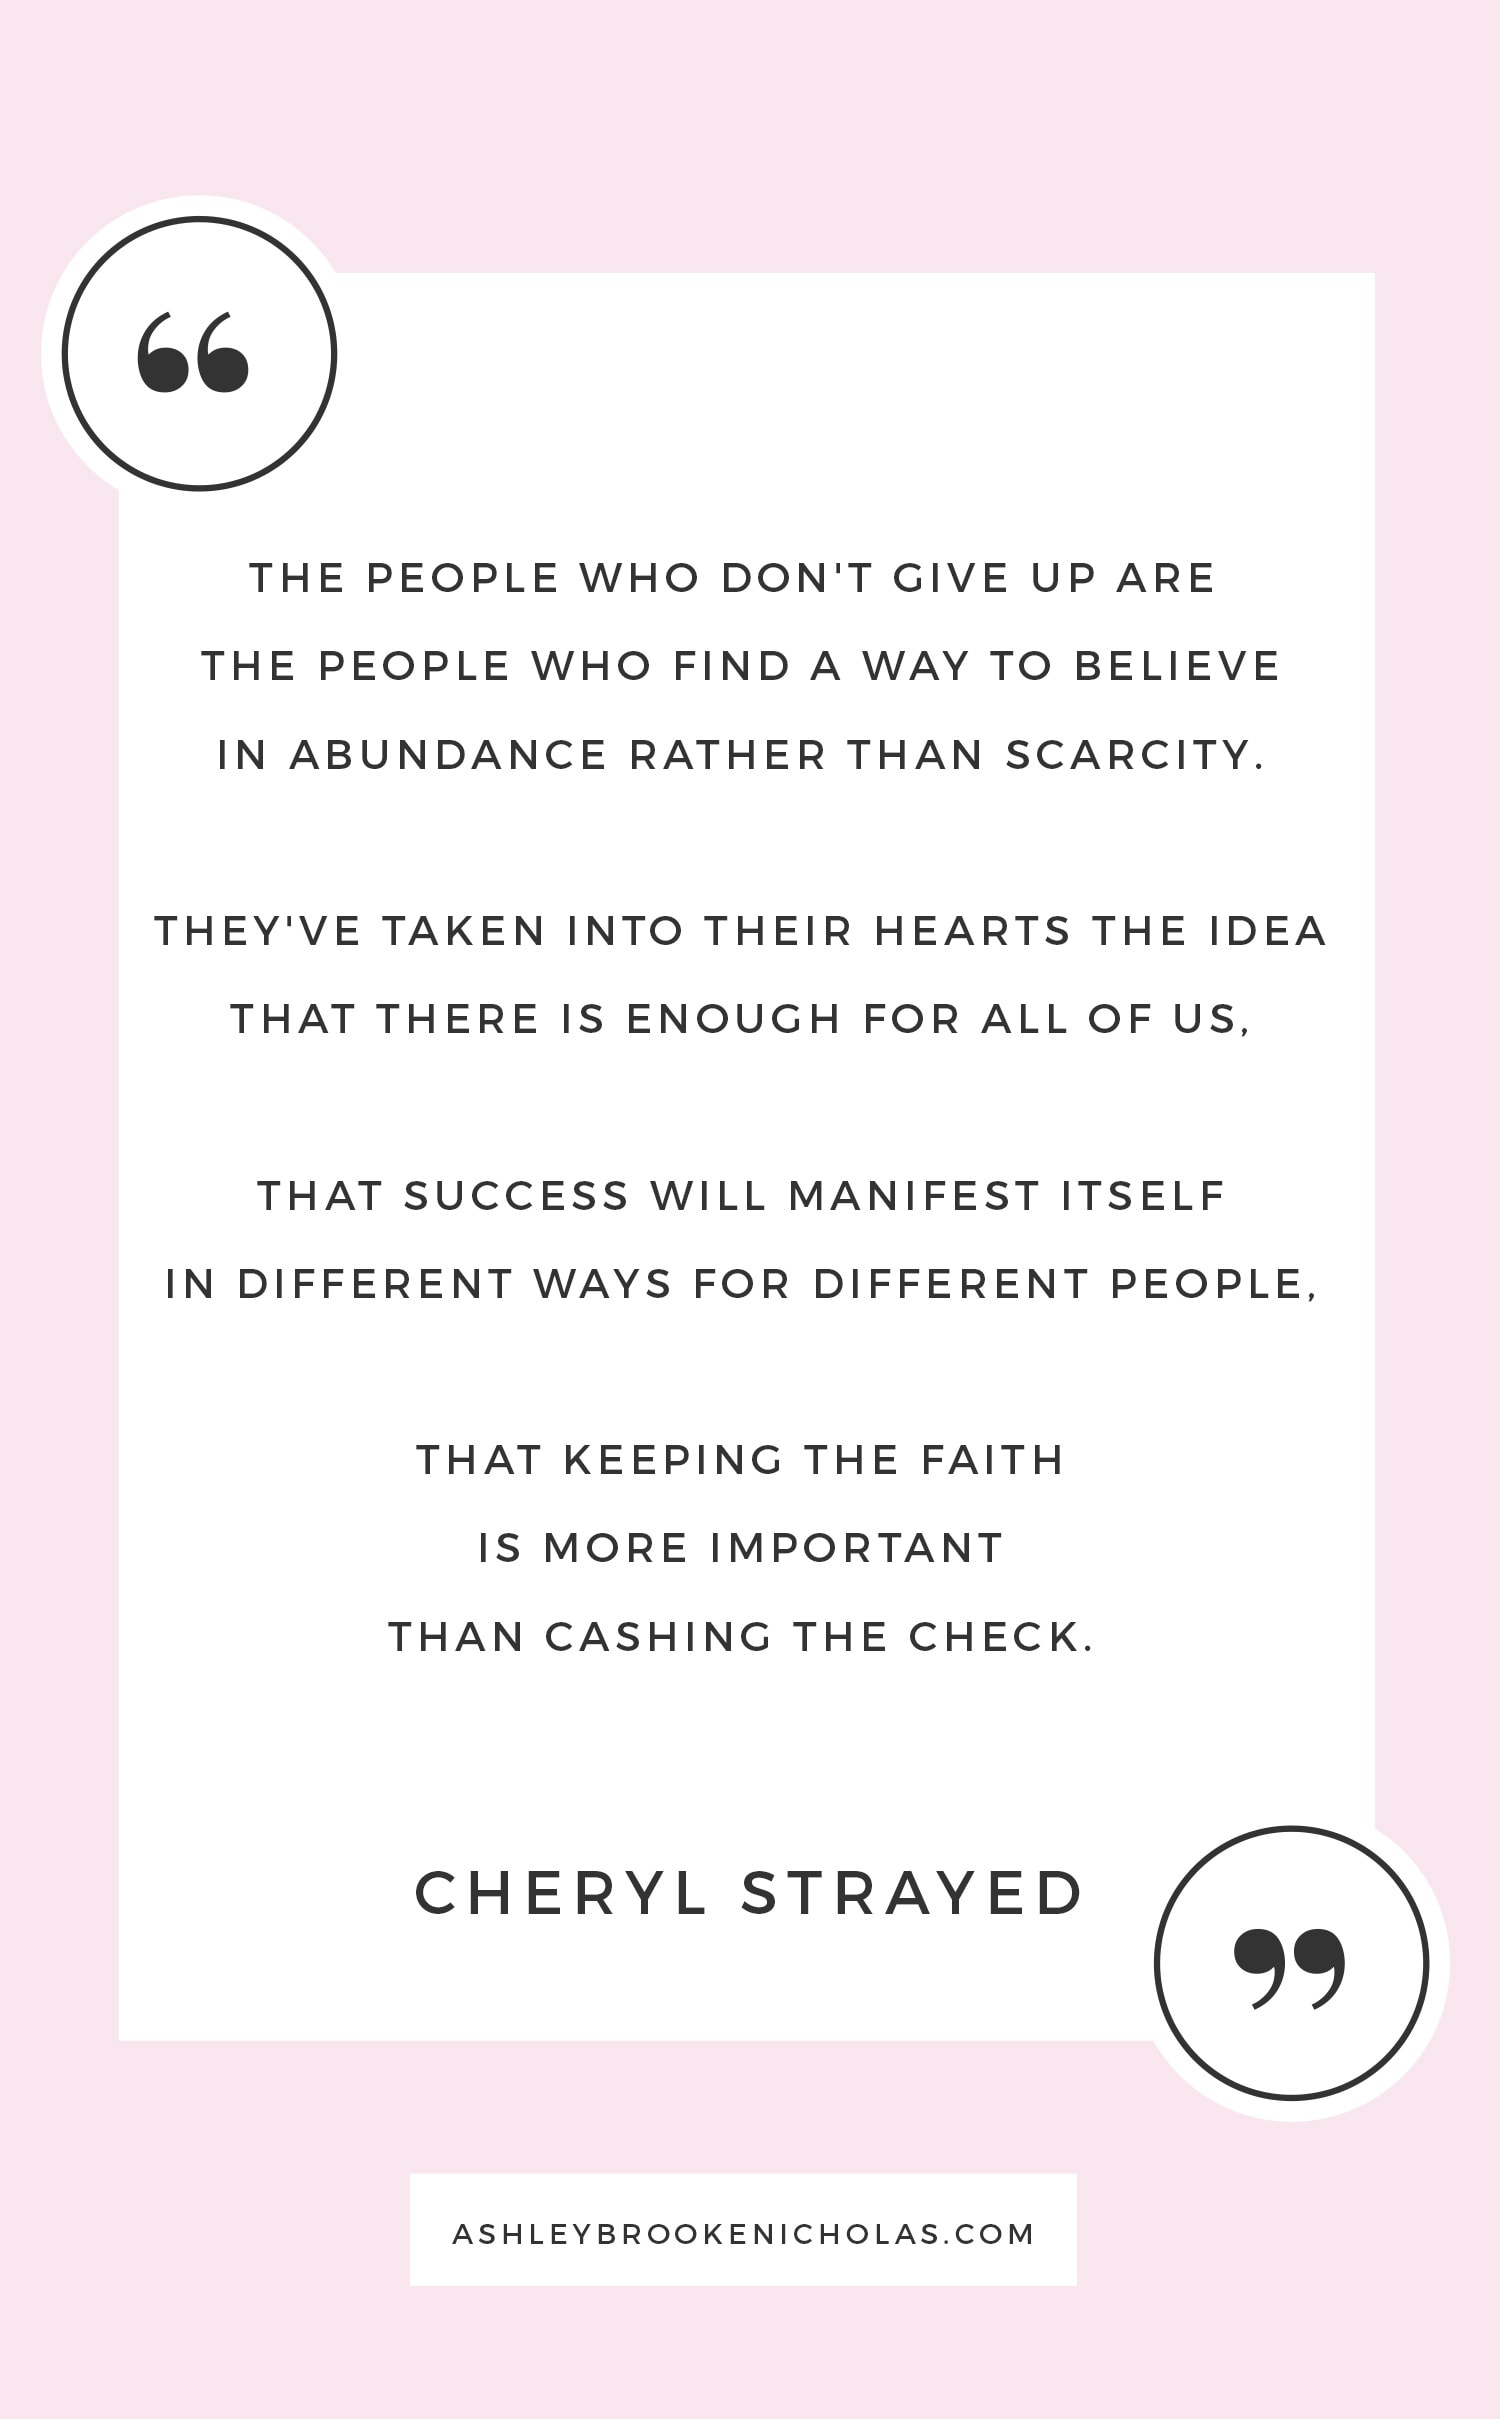 Life Quote Wallpaper M Lovethis Cheryl Strayed Quotes That Will Change Your Life Ashley